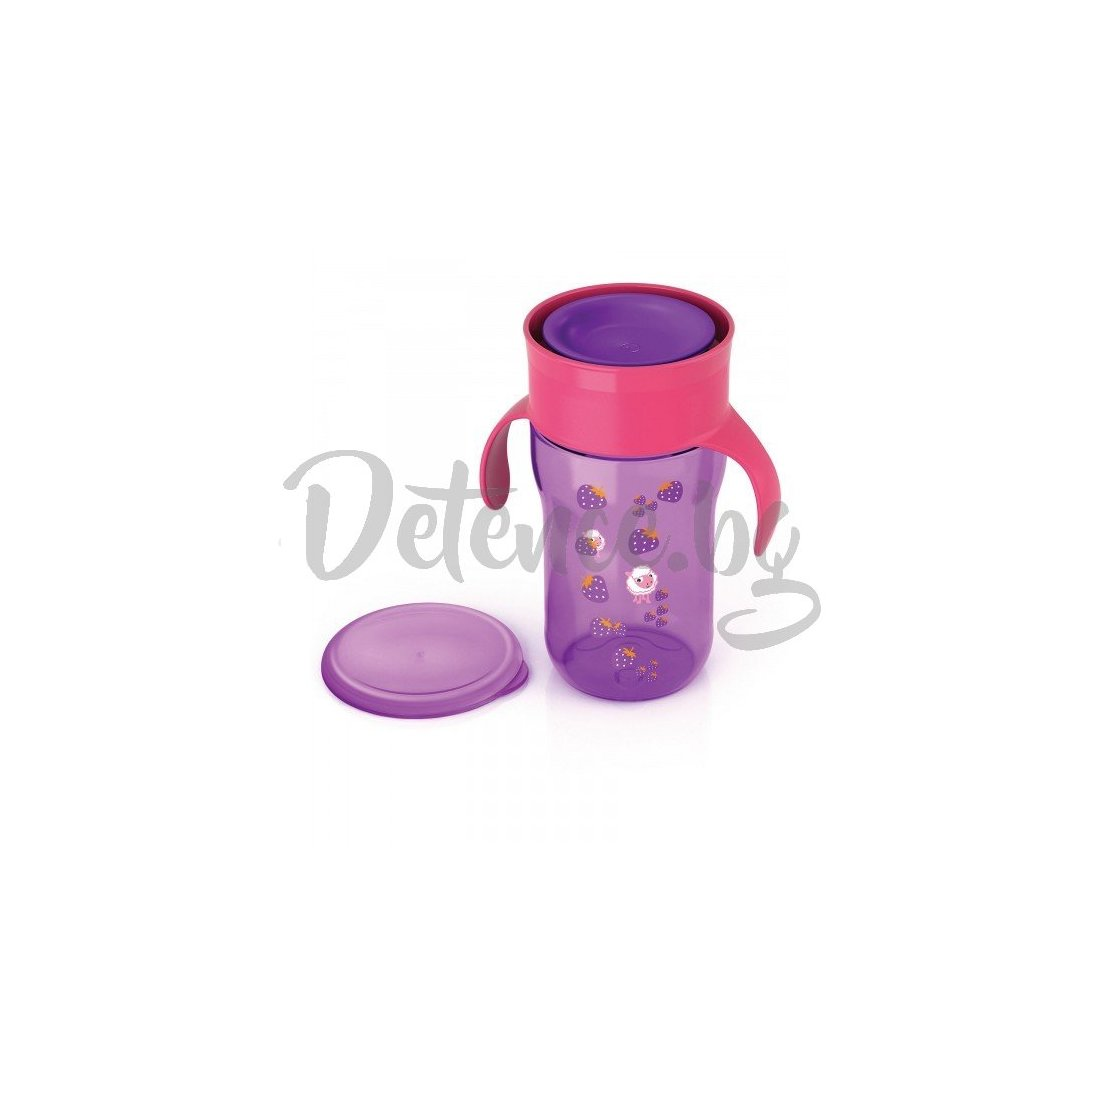 AVENT - A0481-2